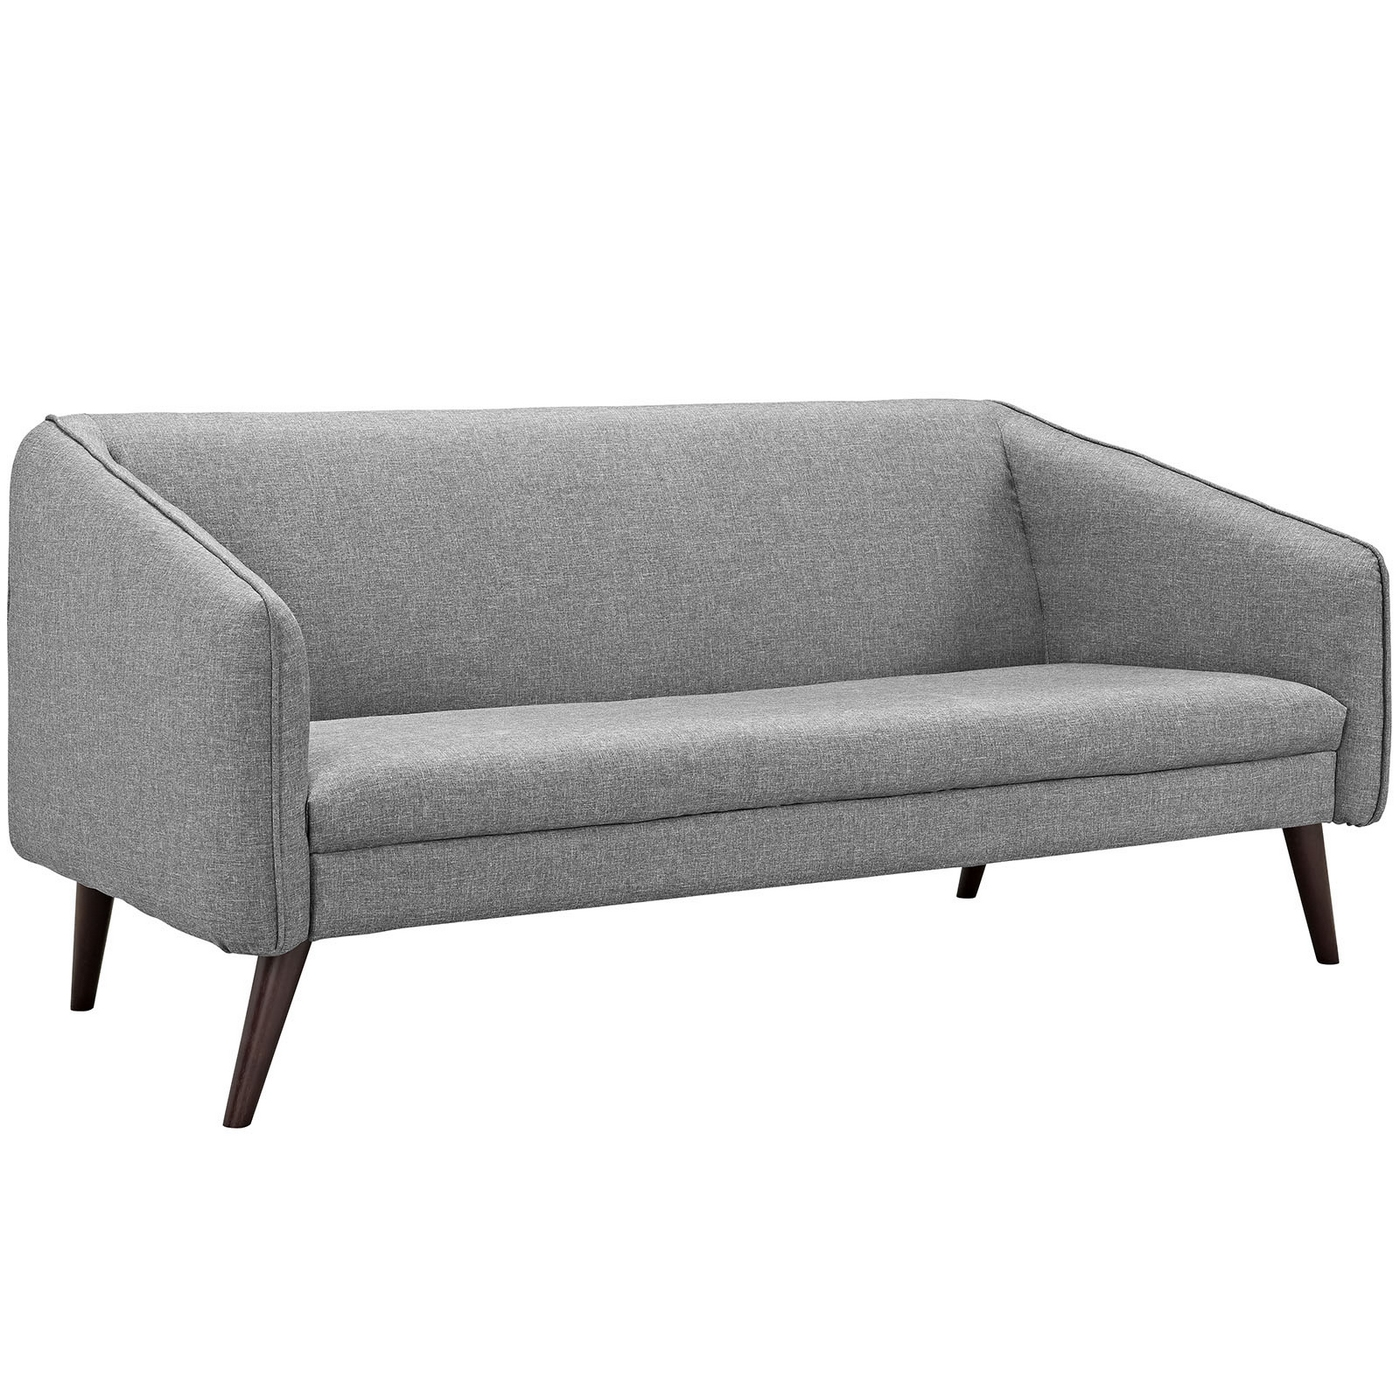 mid century modern light gray sofa avery flexsteel elliott slide upholstered with wood frame